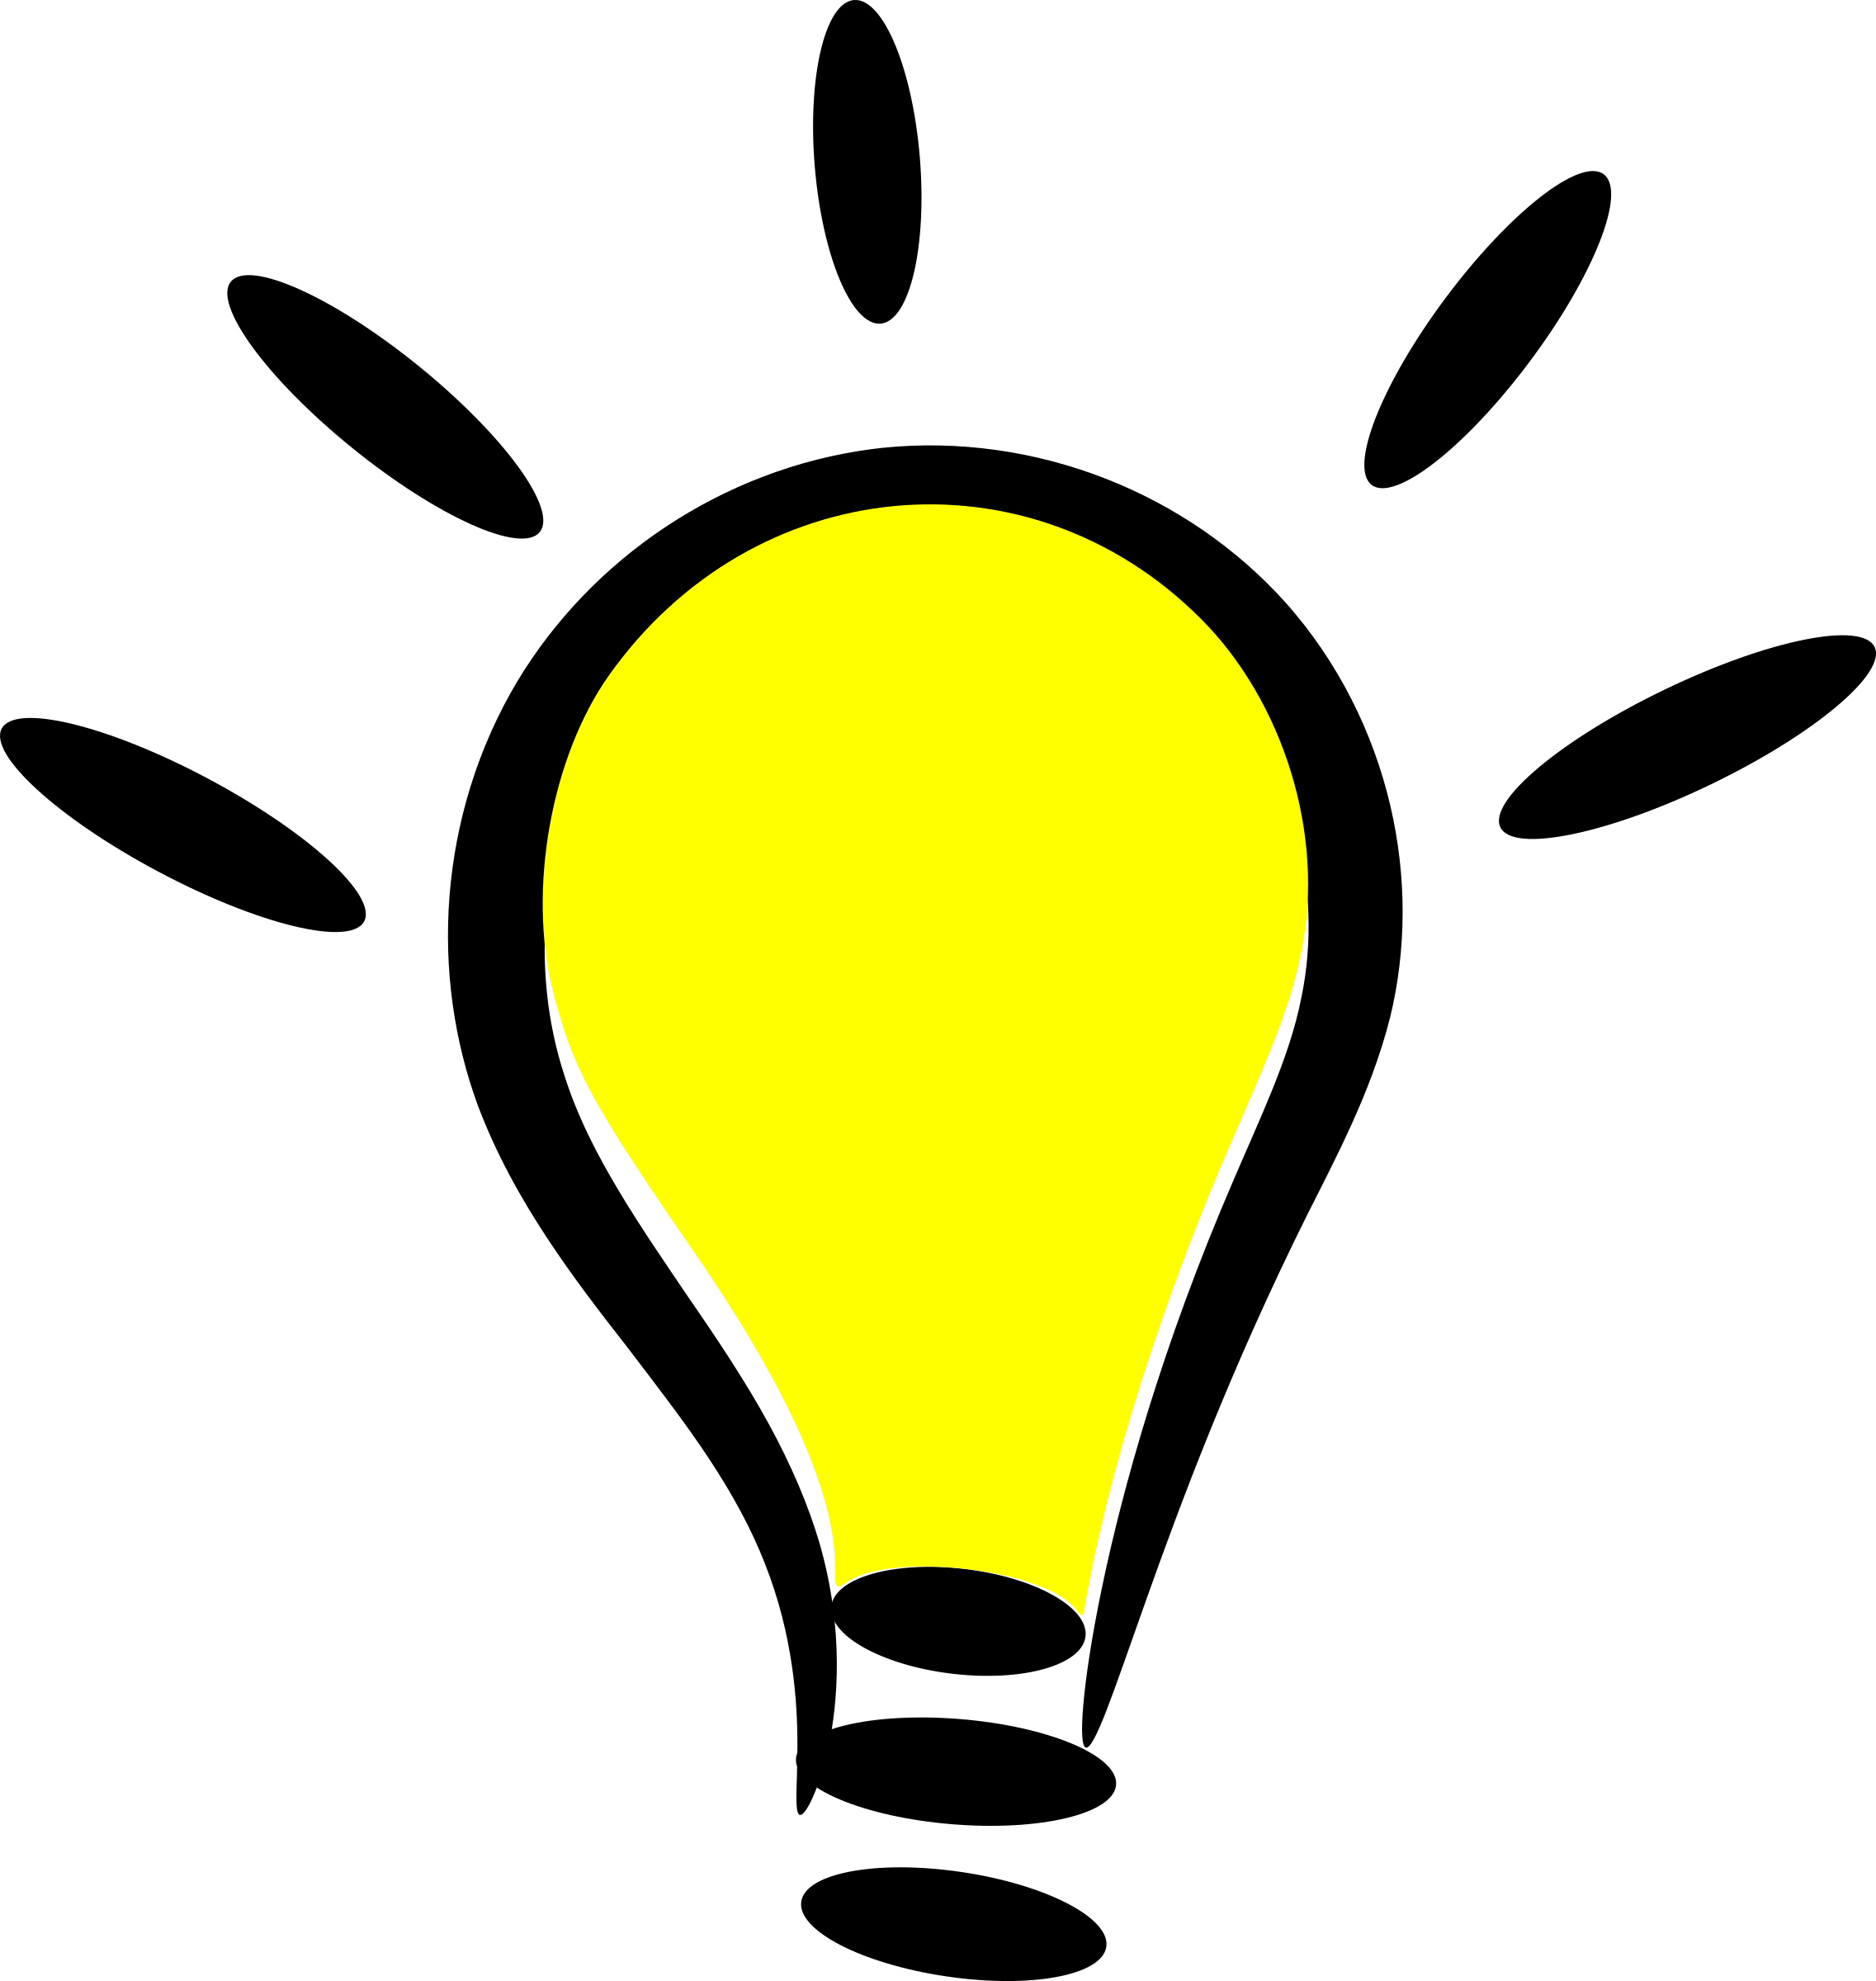 Idea lightbulb png. Light bulb file mart